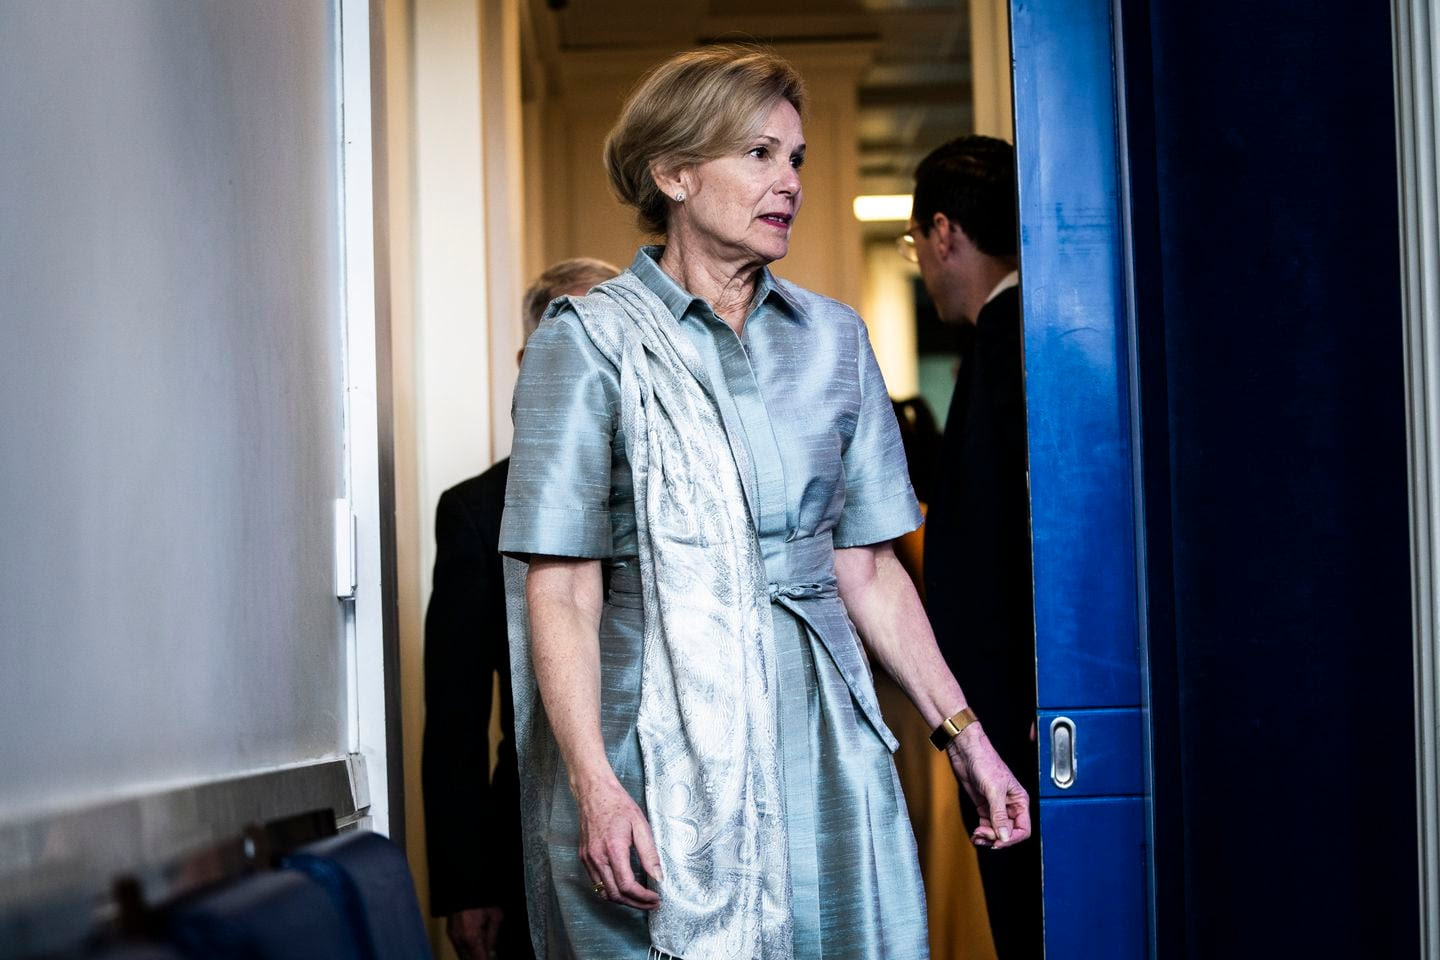 Of course you've noticed Deborah Birx's style. That's why it's so reassuring.